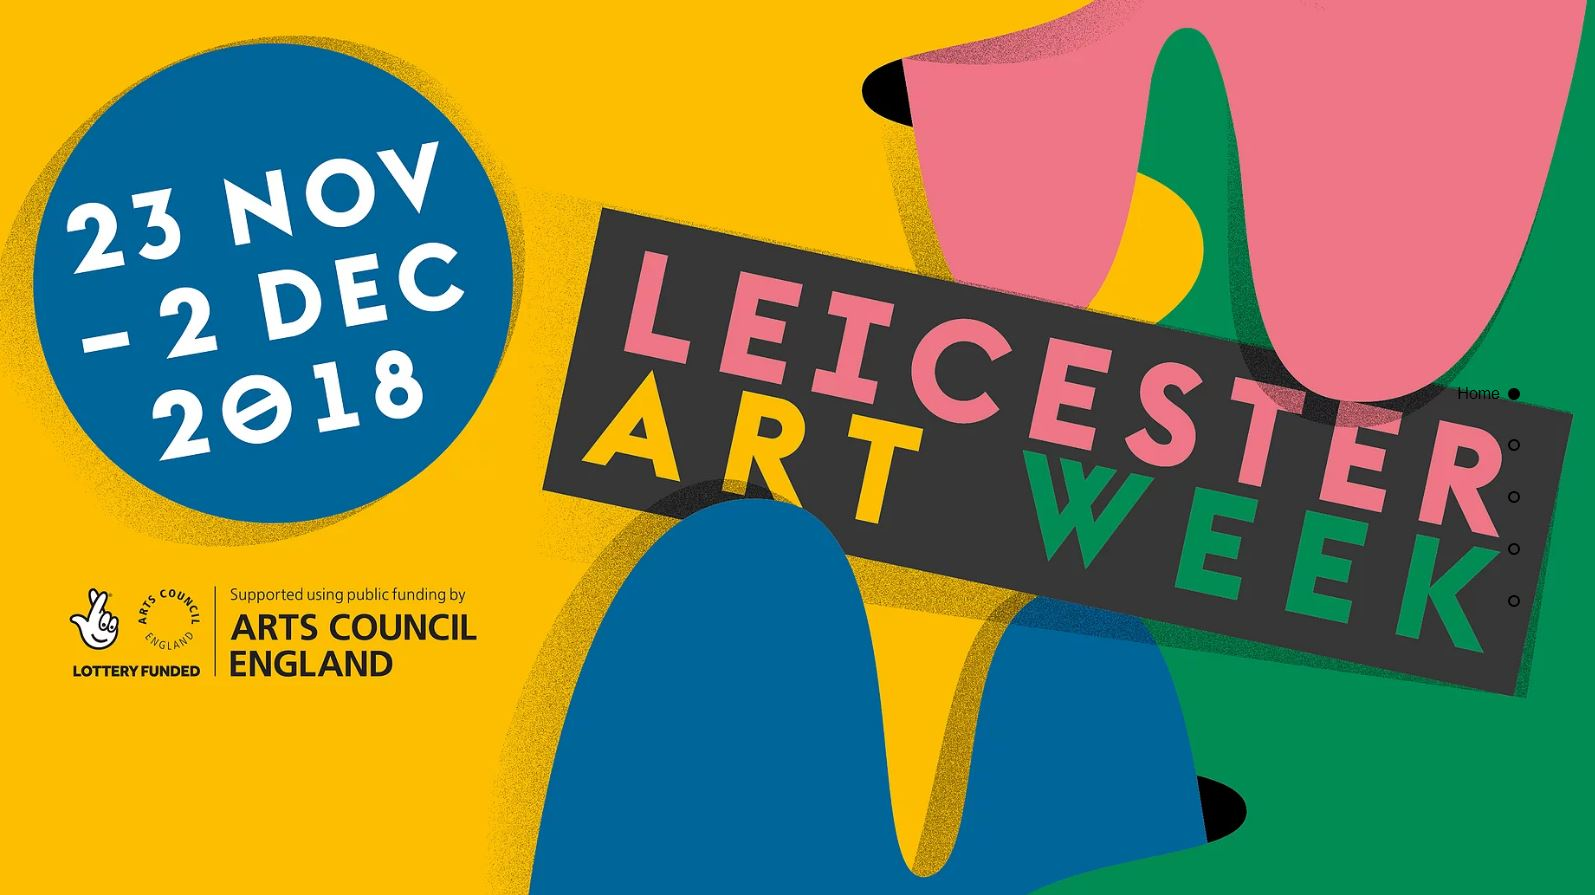 Leicester Art Week ad